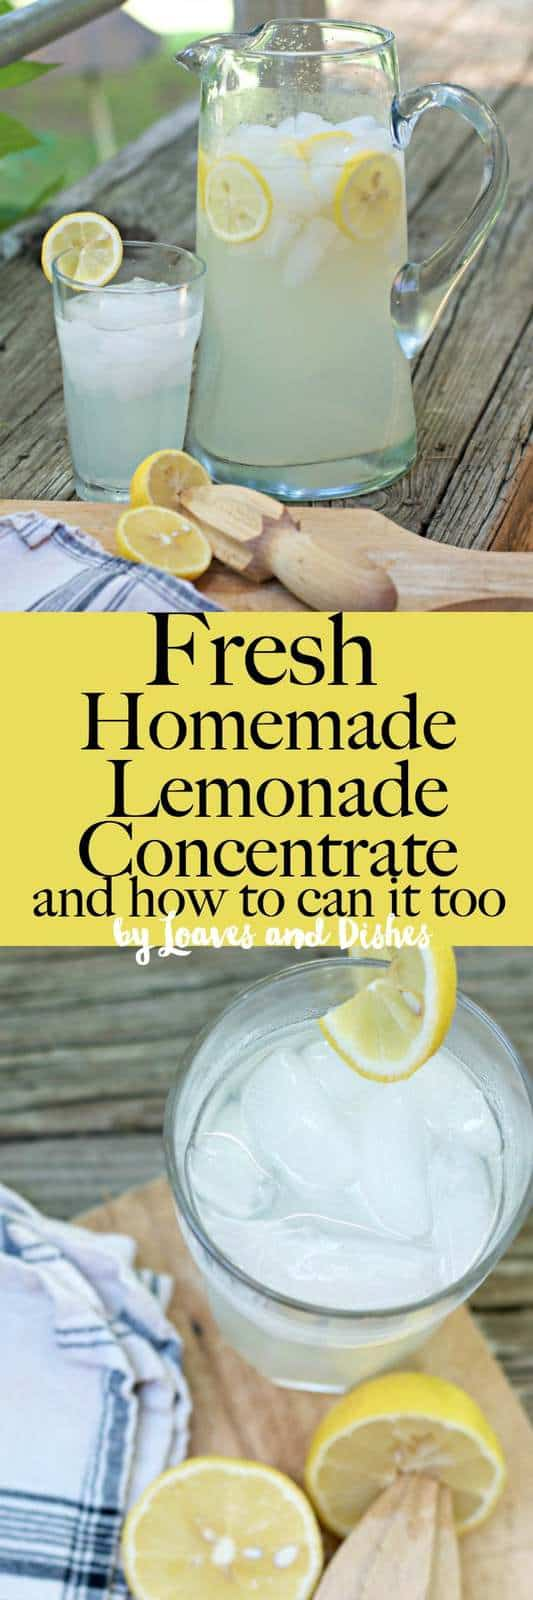 Simple recipe for fresh squeezed lemonade concentrate that you can make at home. Its easy and healthy. Then make by the gallon from the concentrate! Perfect summer drink.